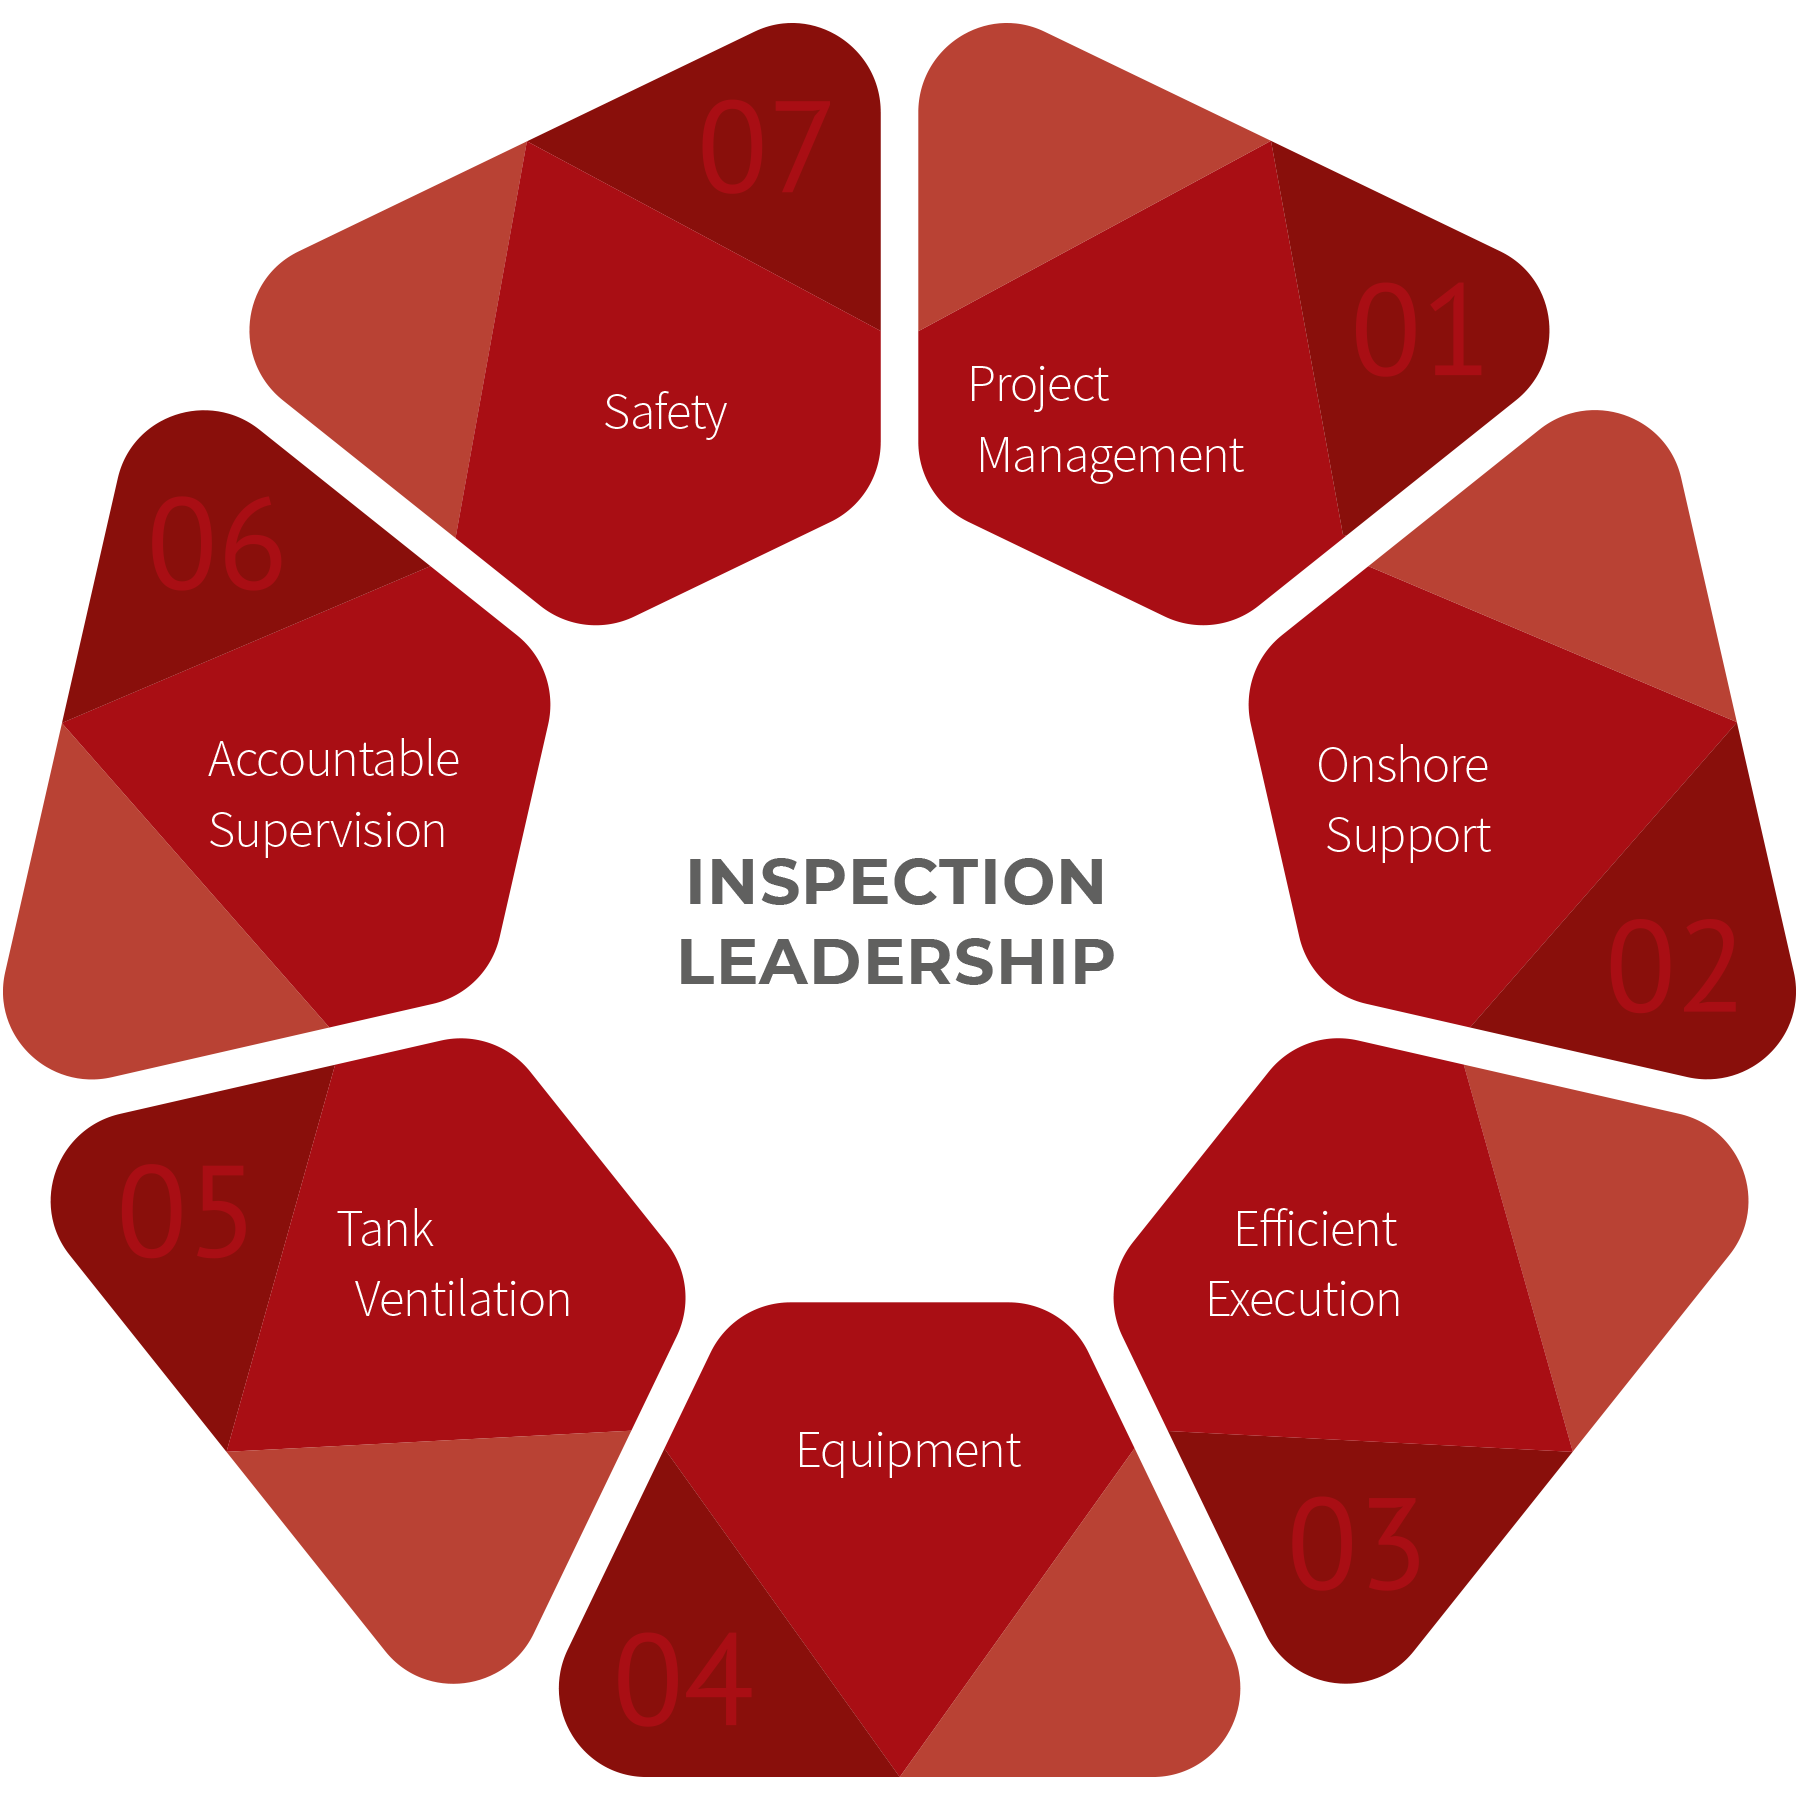 Inspection Leadership